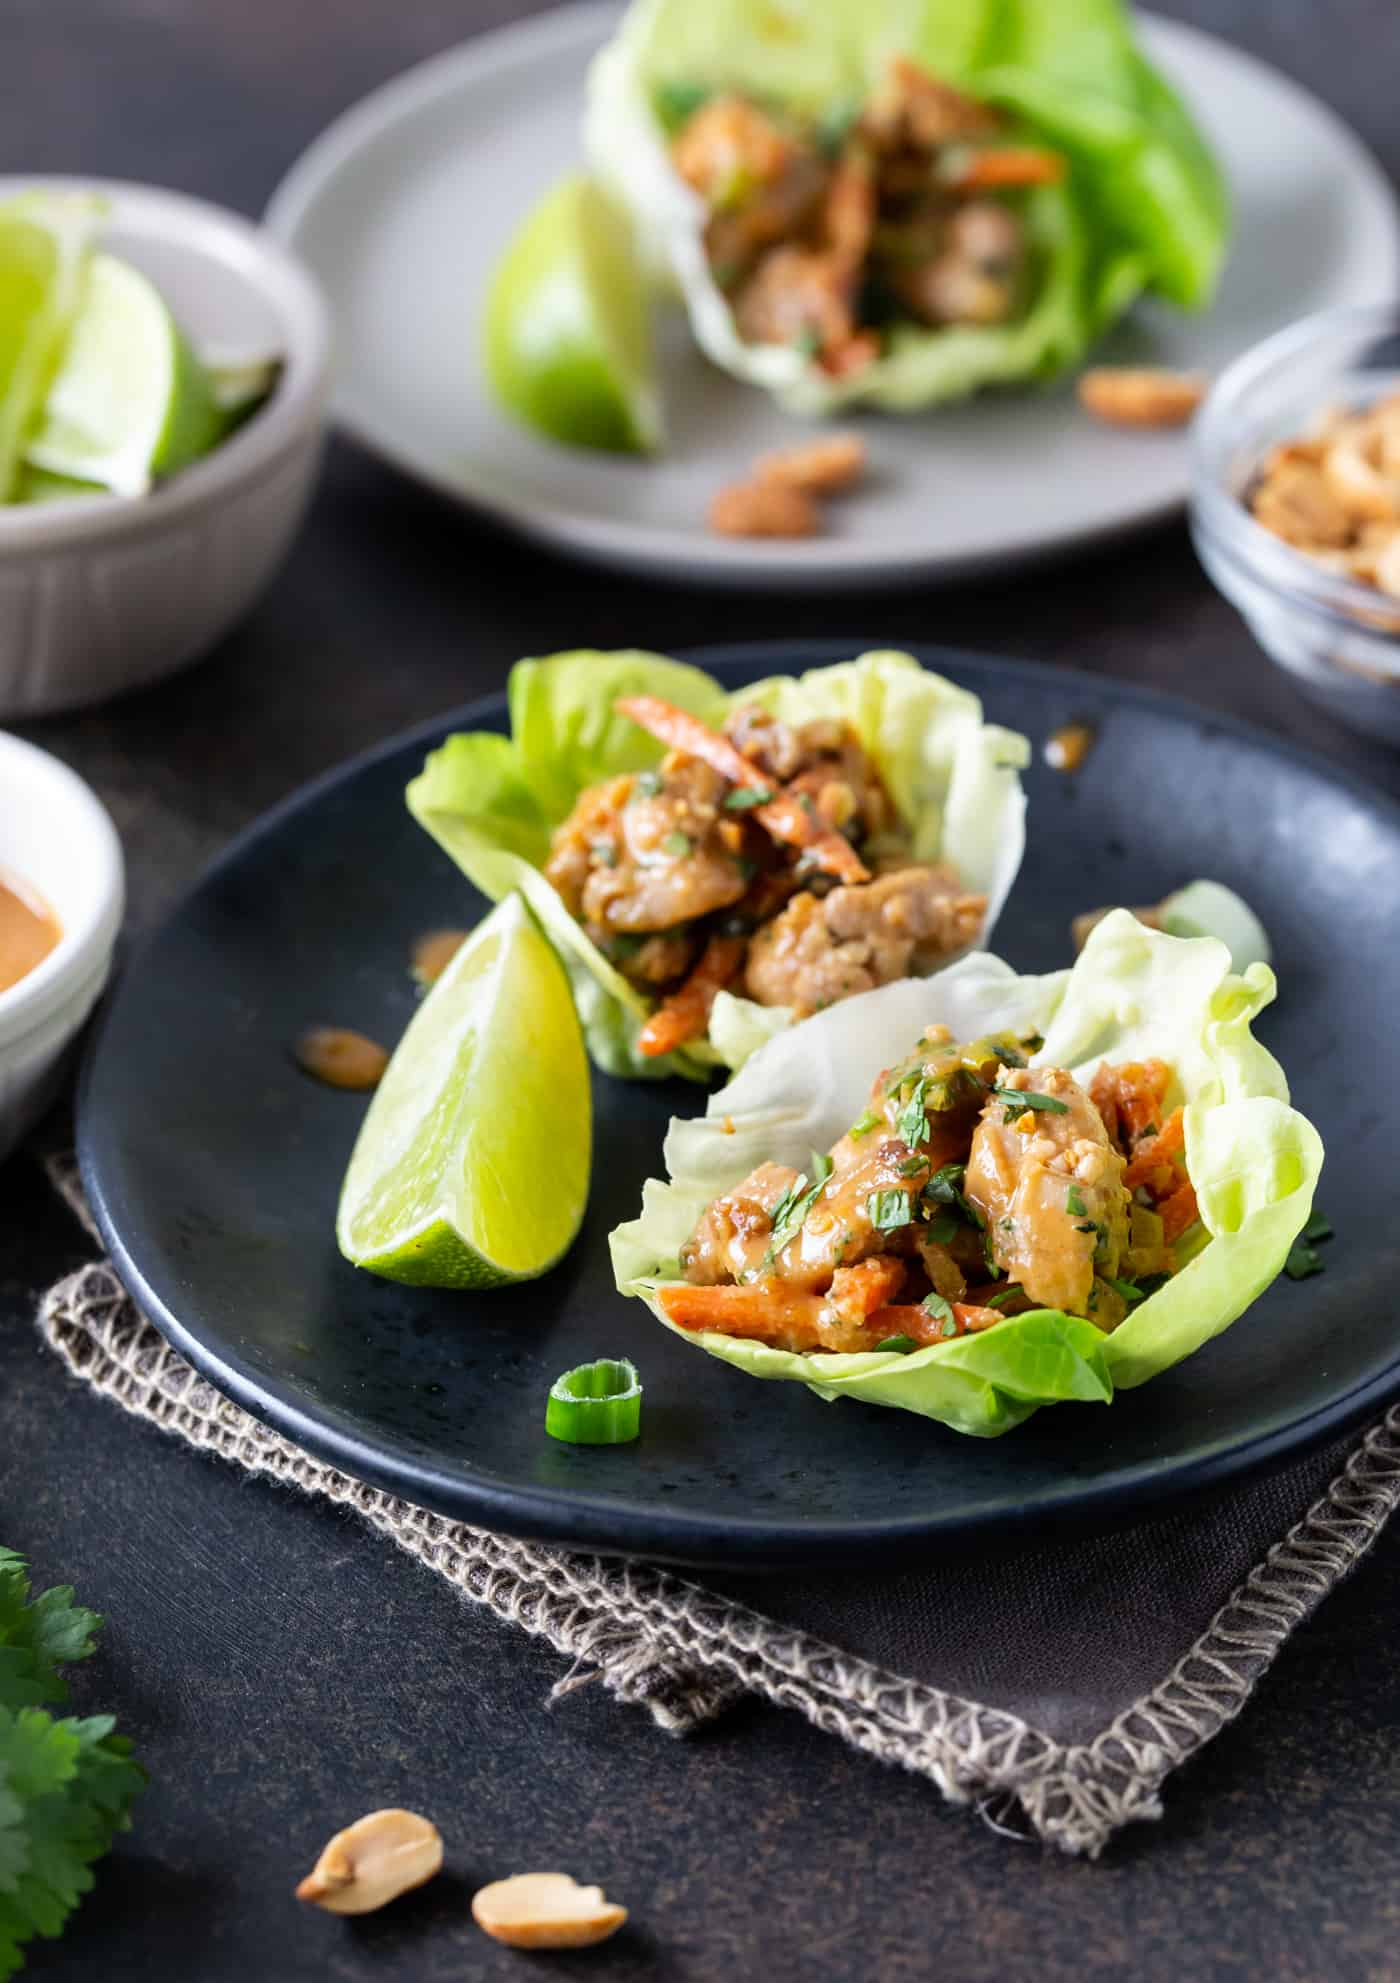 Image of Thai Peanut Chicken Lettuce Wraps Recipe on a dark plate with fresh lime wedges for garnish.